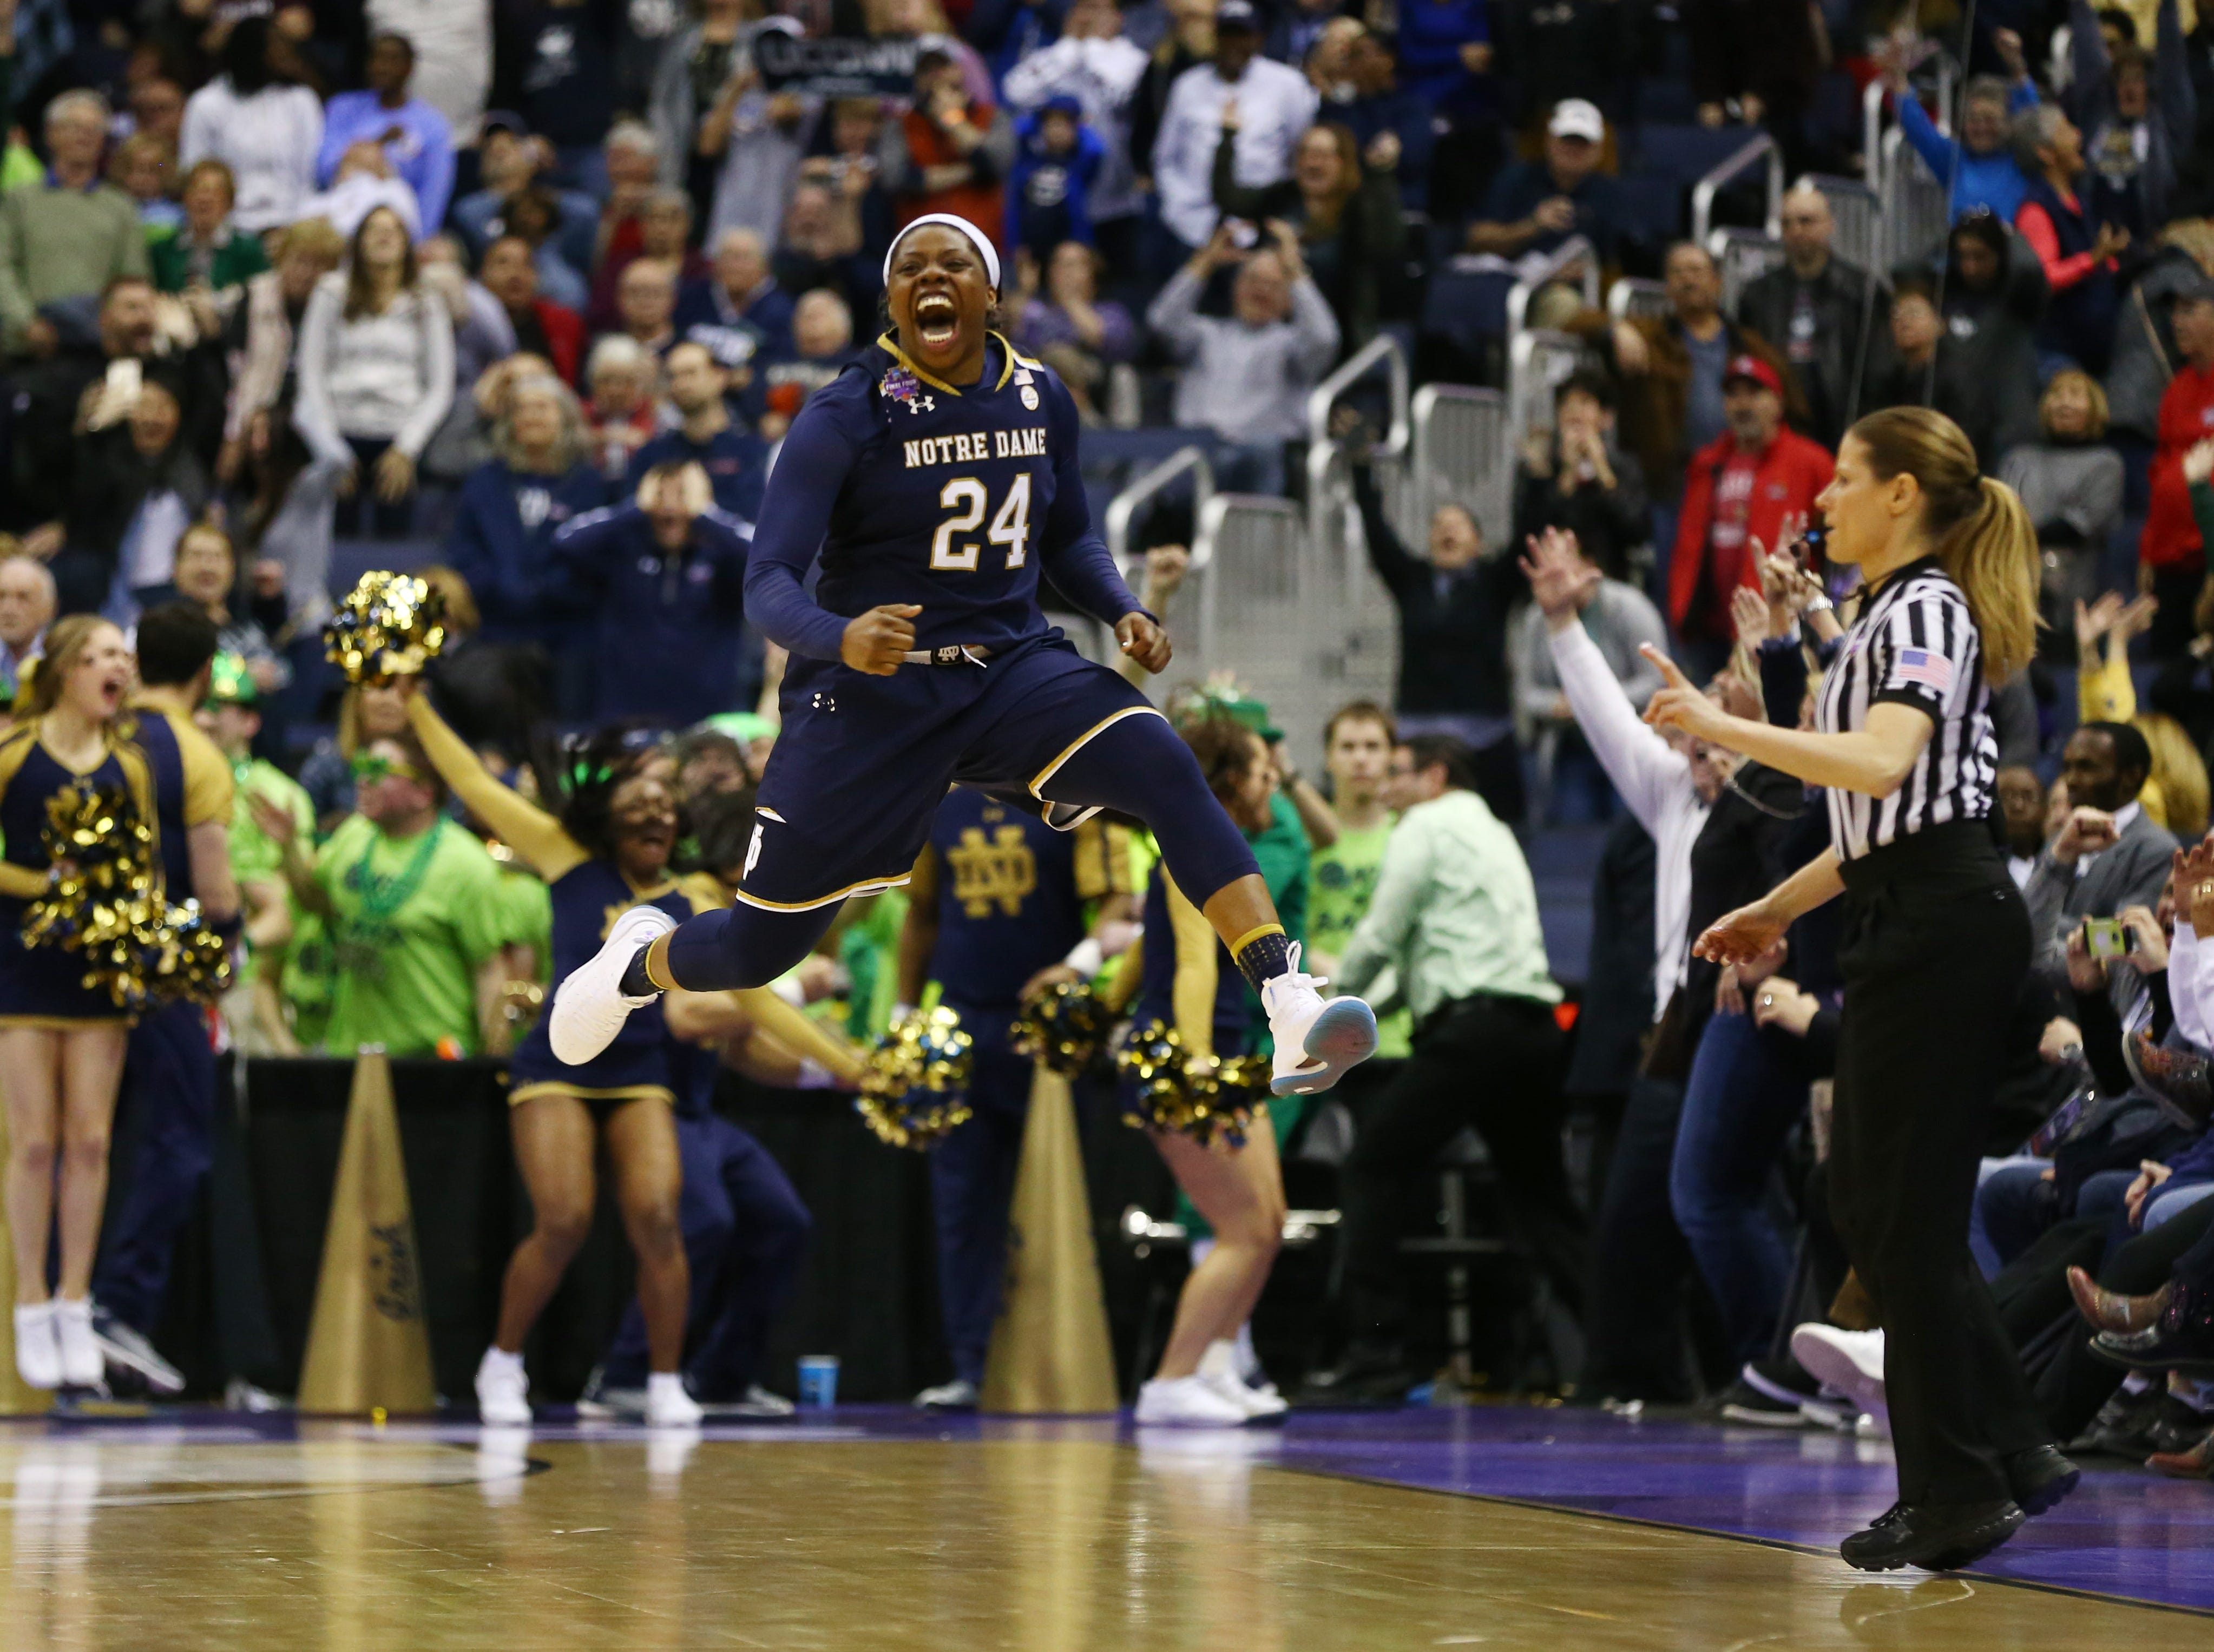 March 30: Notre Dame Fighting Irish guard Arike Ogunbowale (24) reacts after hitting the game-winning shot against the Connecticut Huskies in overtime of their Final Four game.